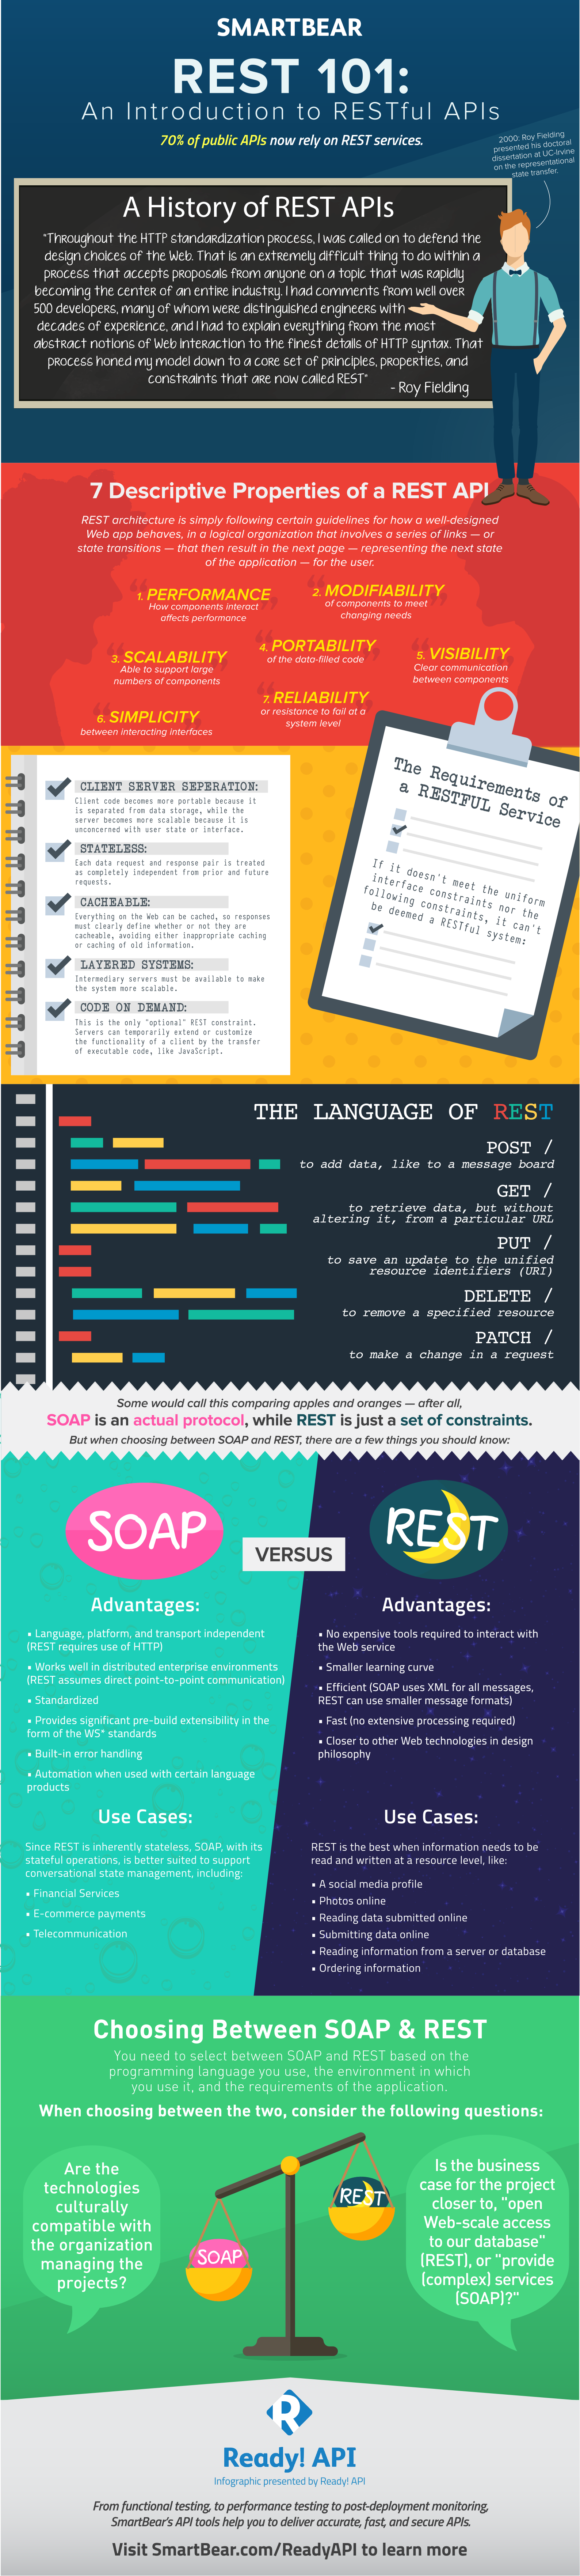 REST 101 Infographic Final